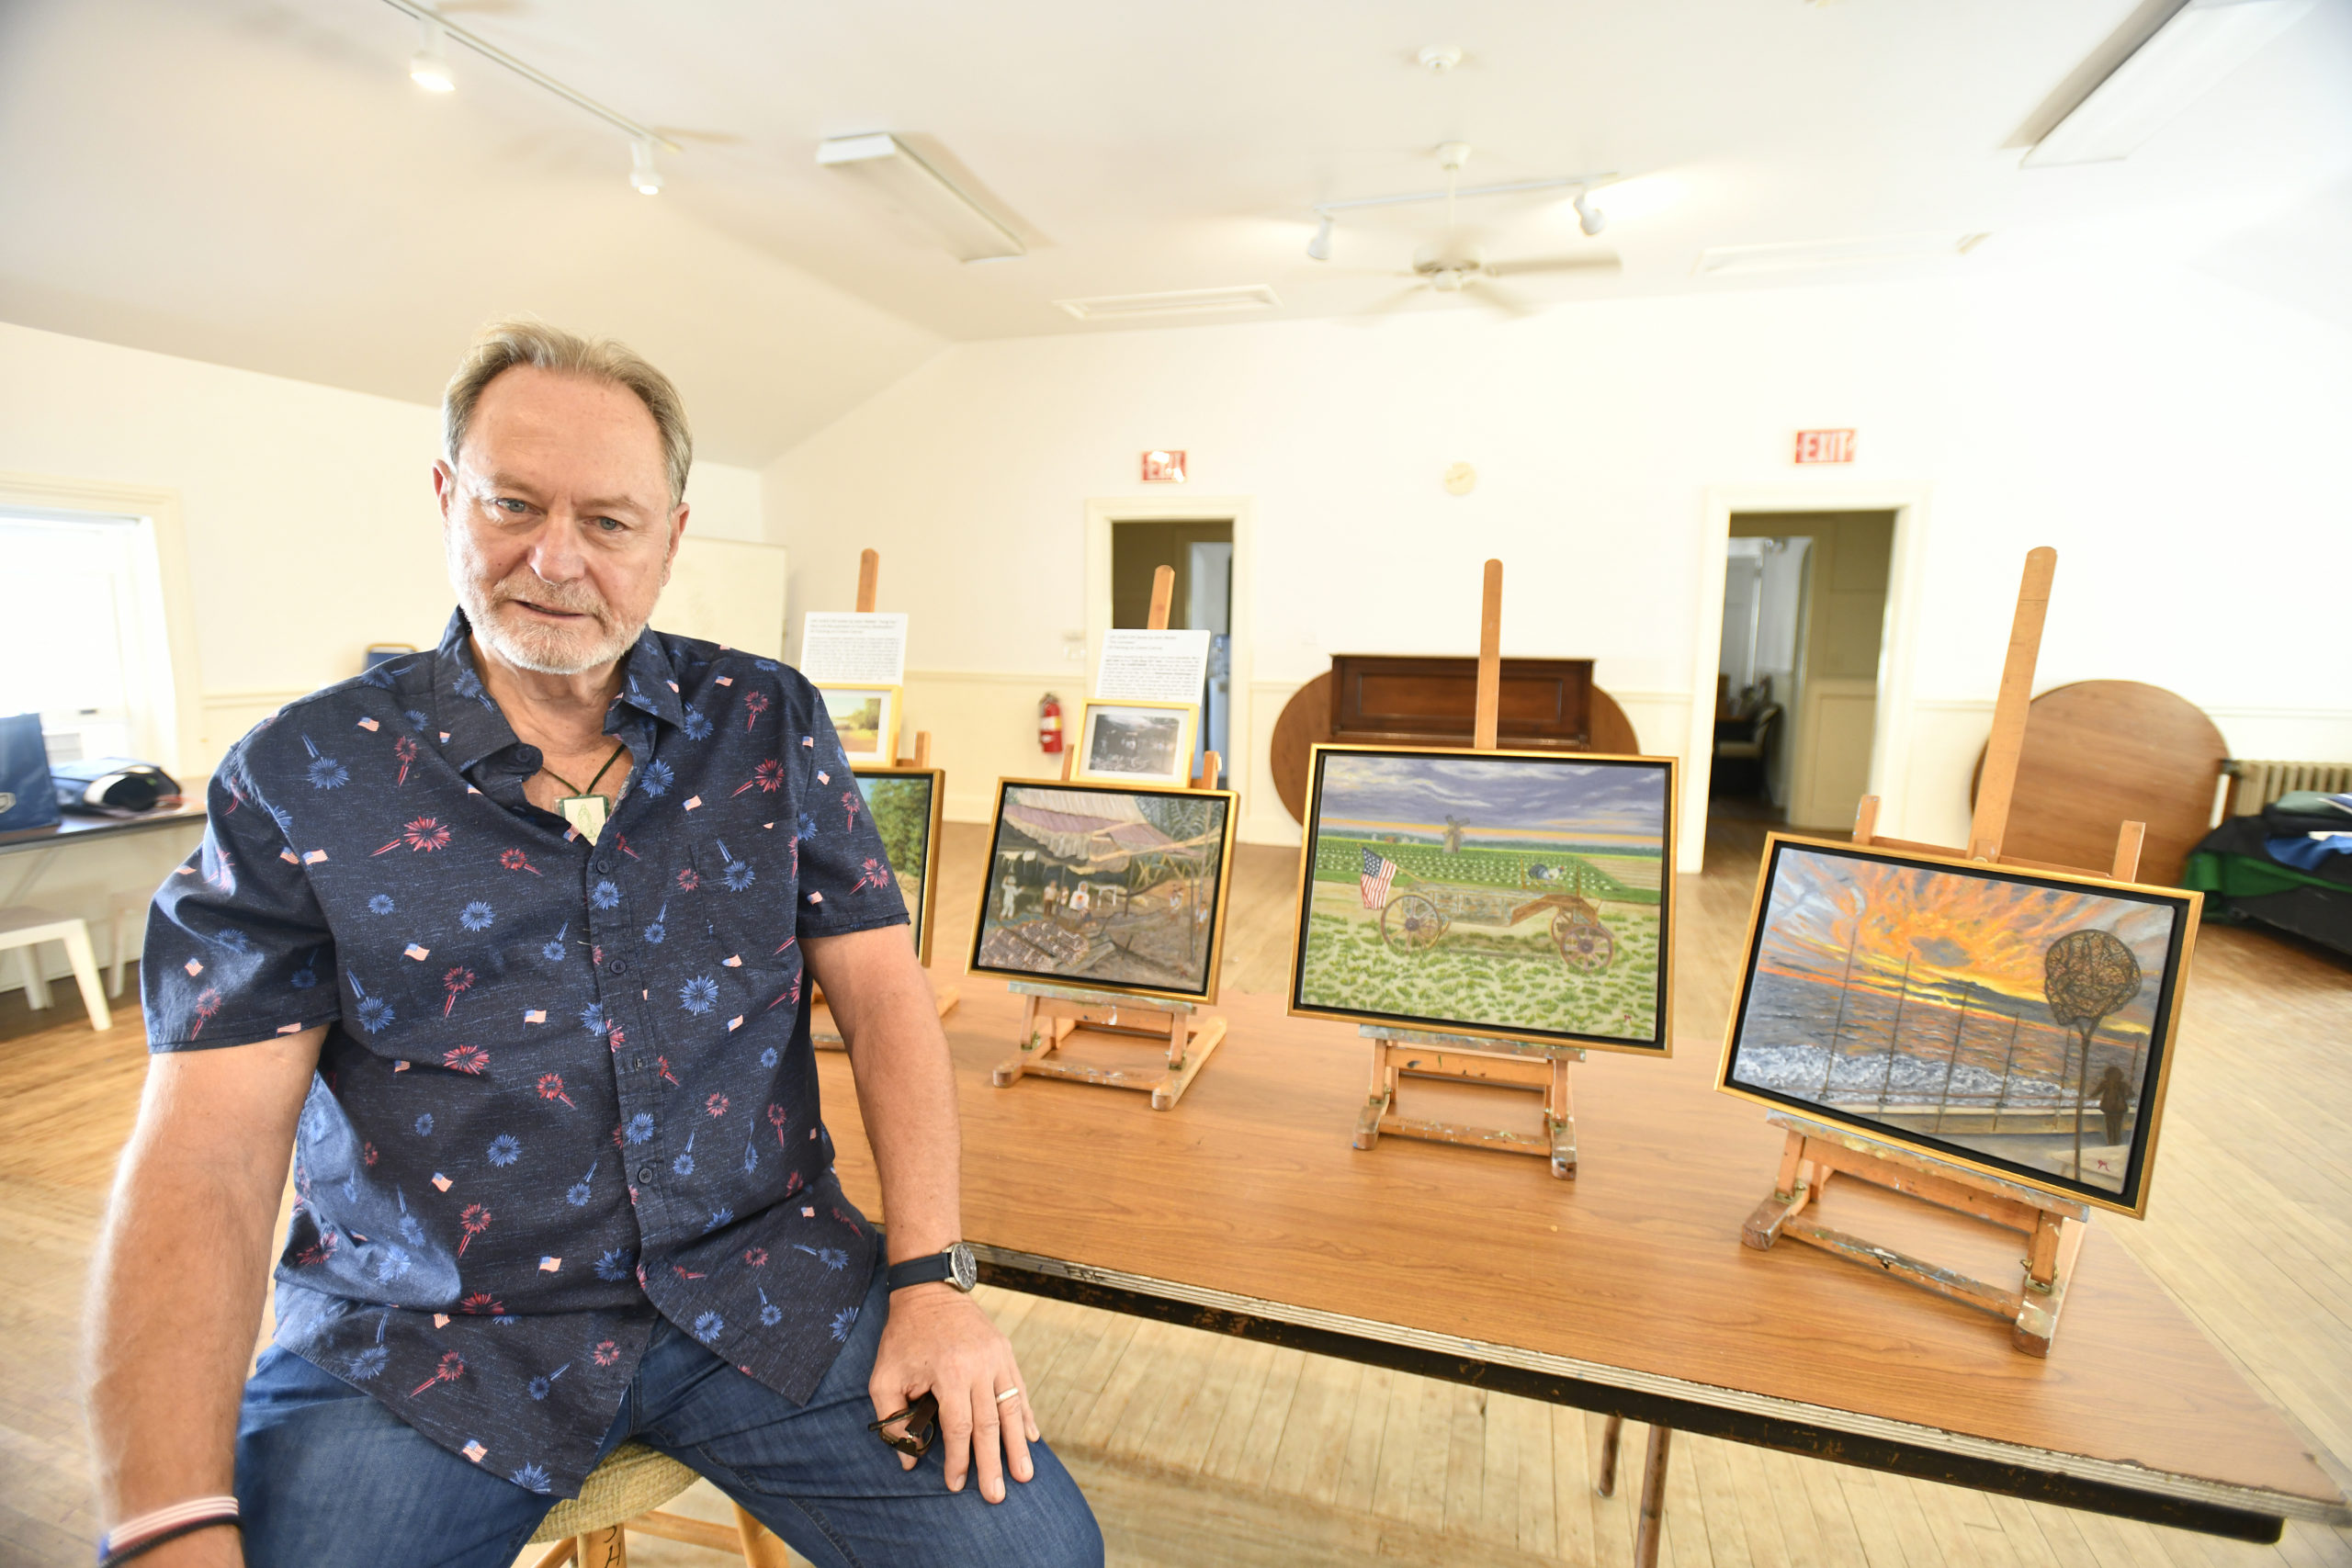 John Melillo with some of his work at the Southampton Cultural Center.  DANA SHAW